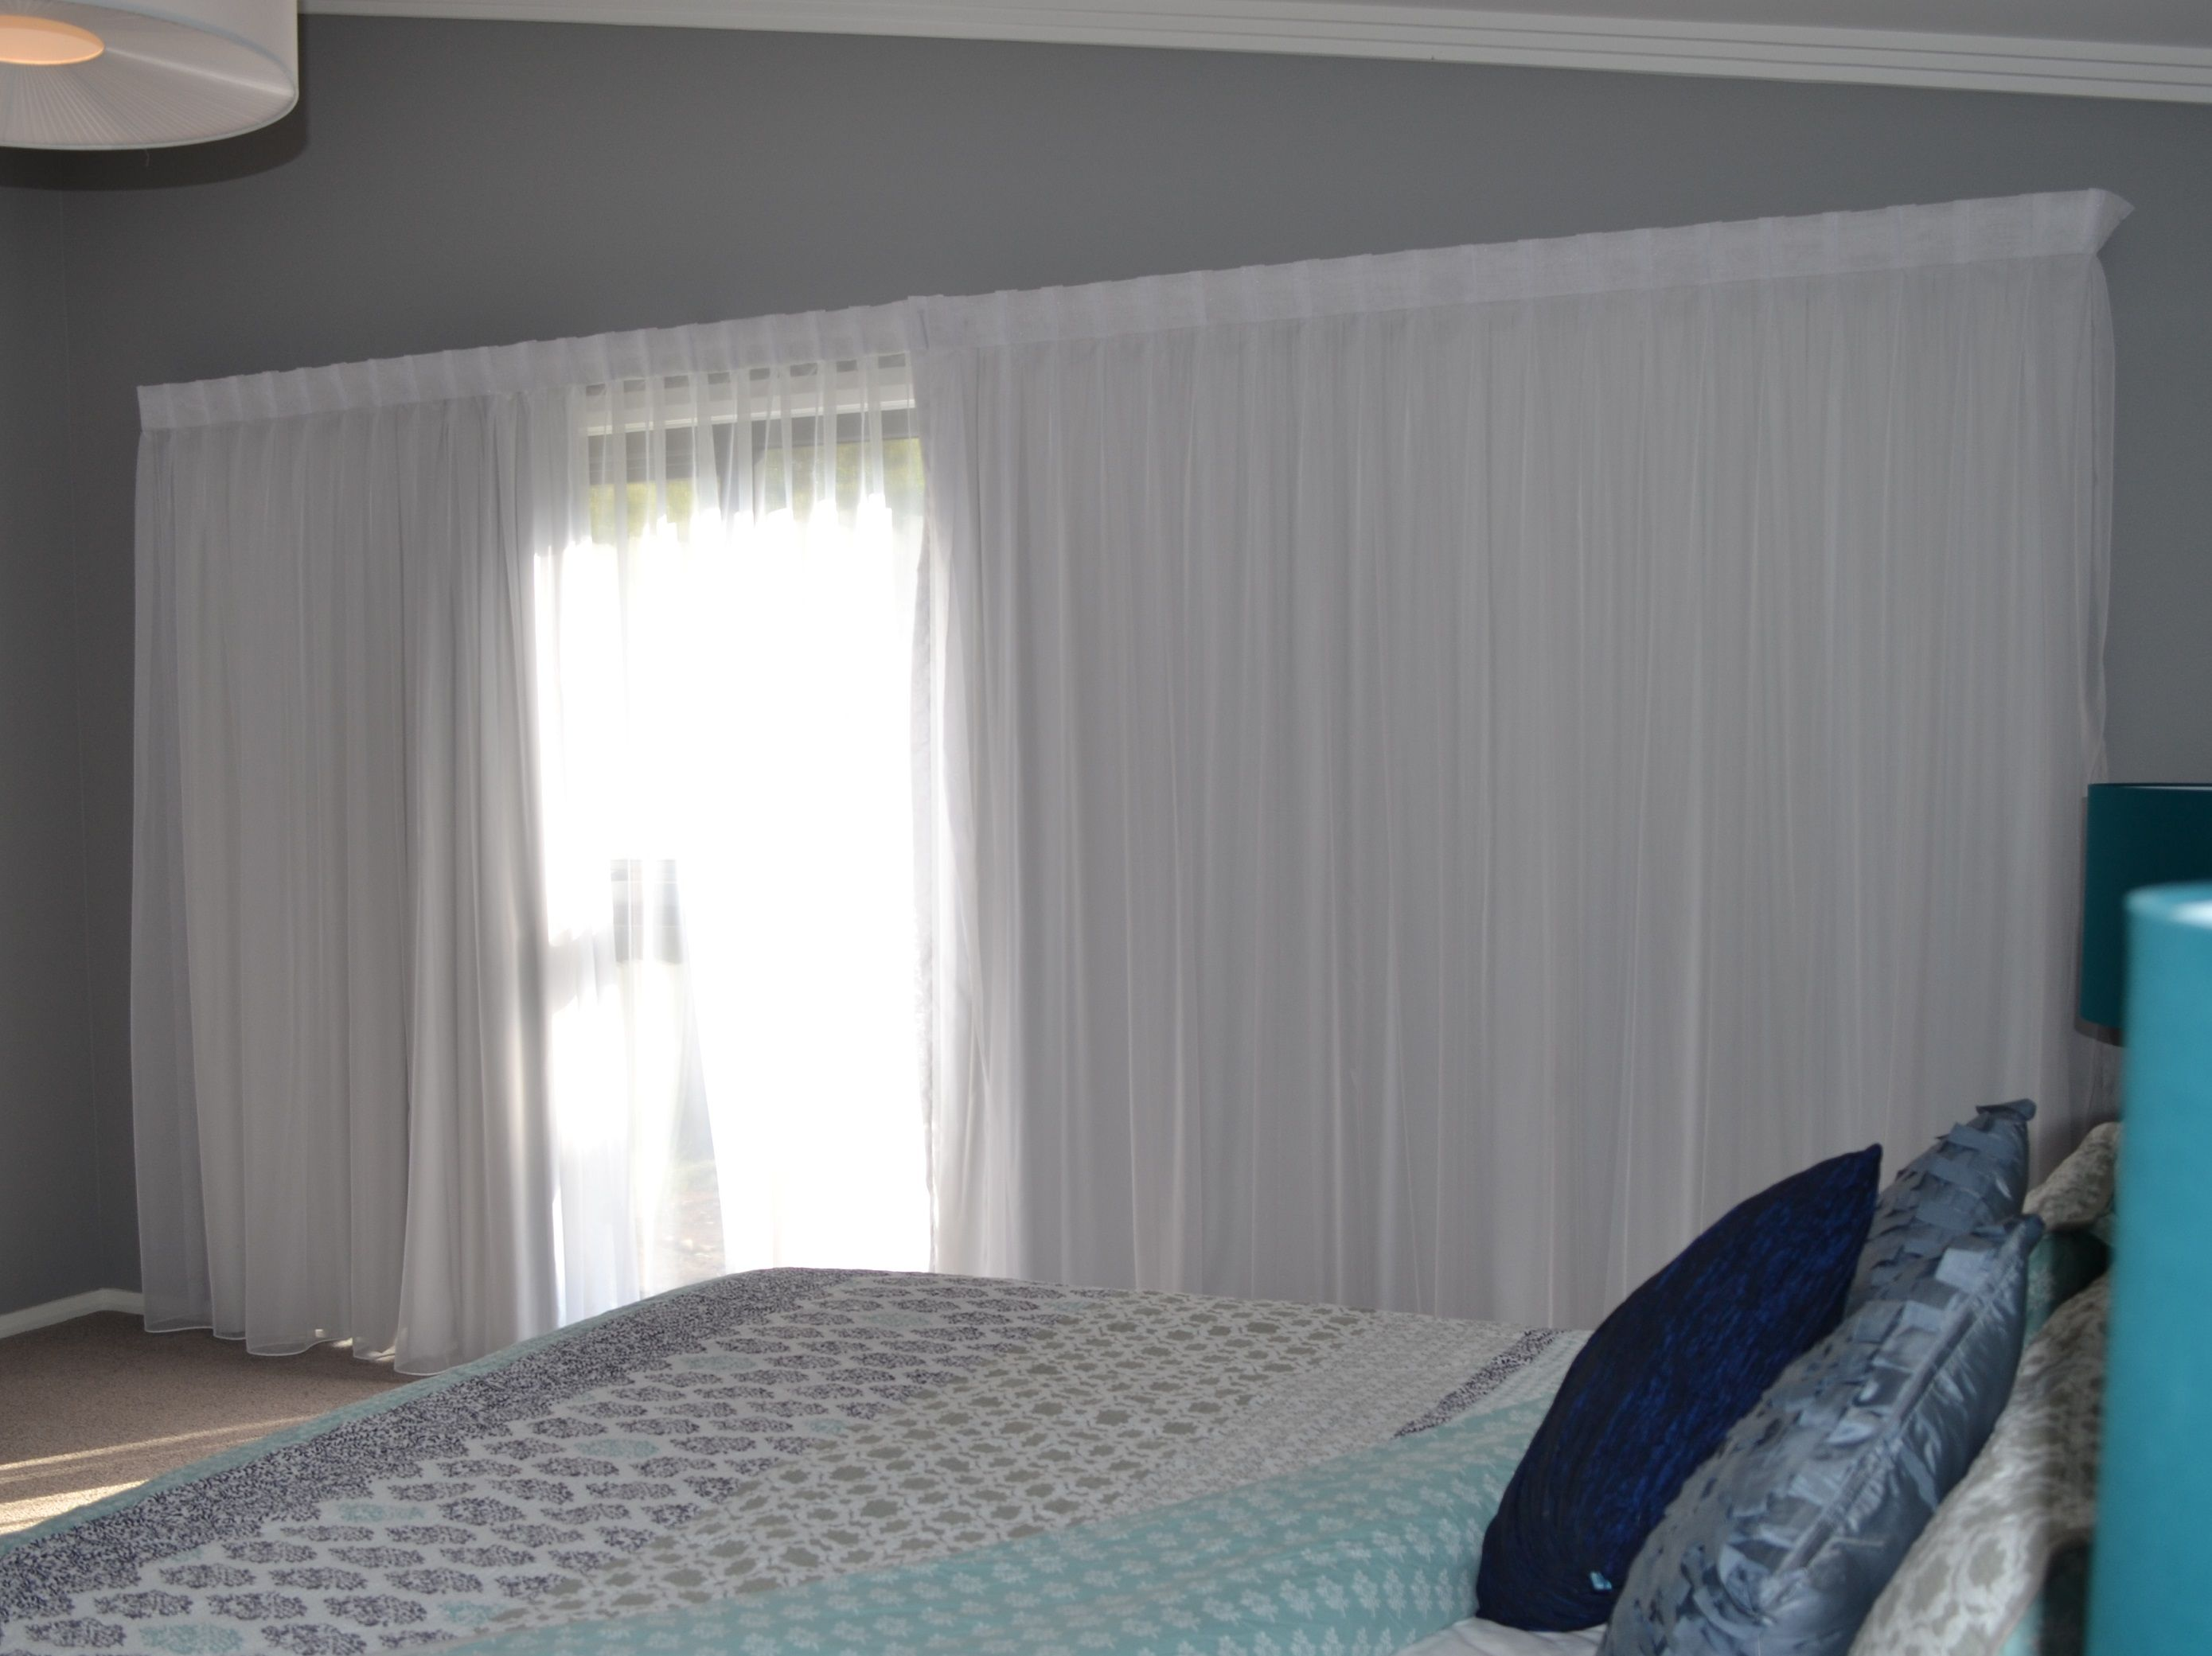 Double Track With A Sheer Curtain At The Front With A